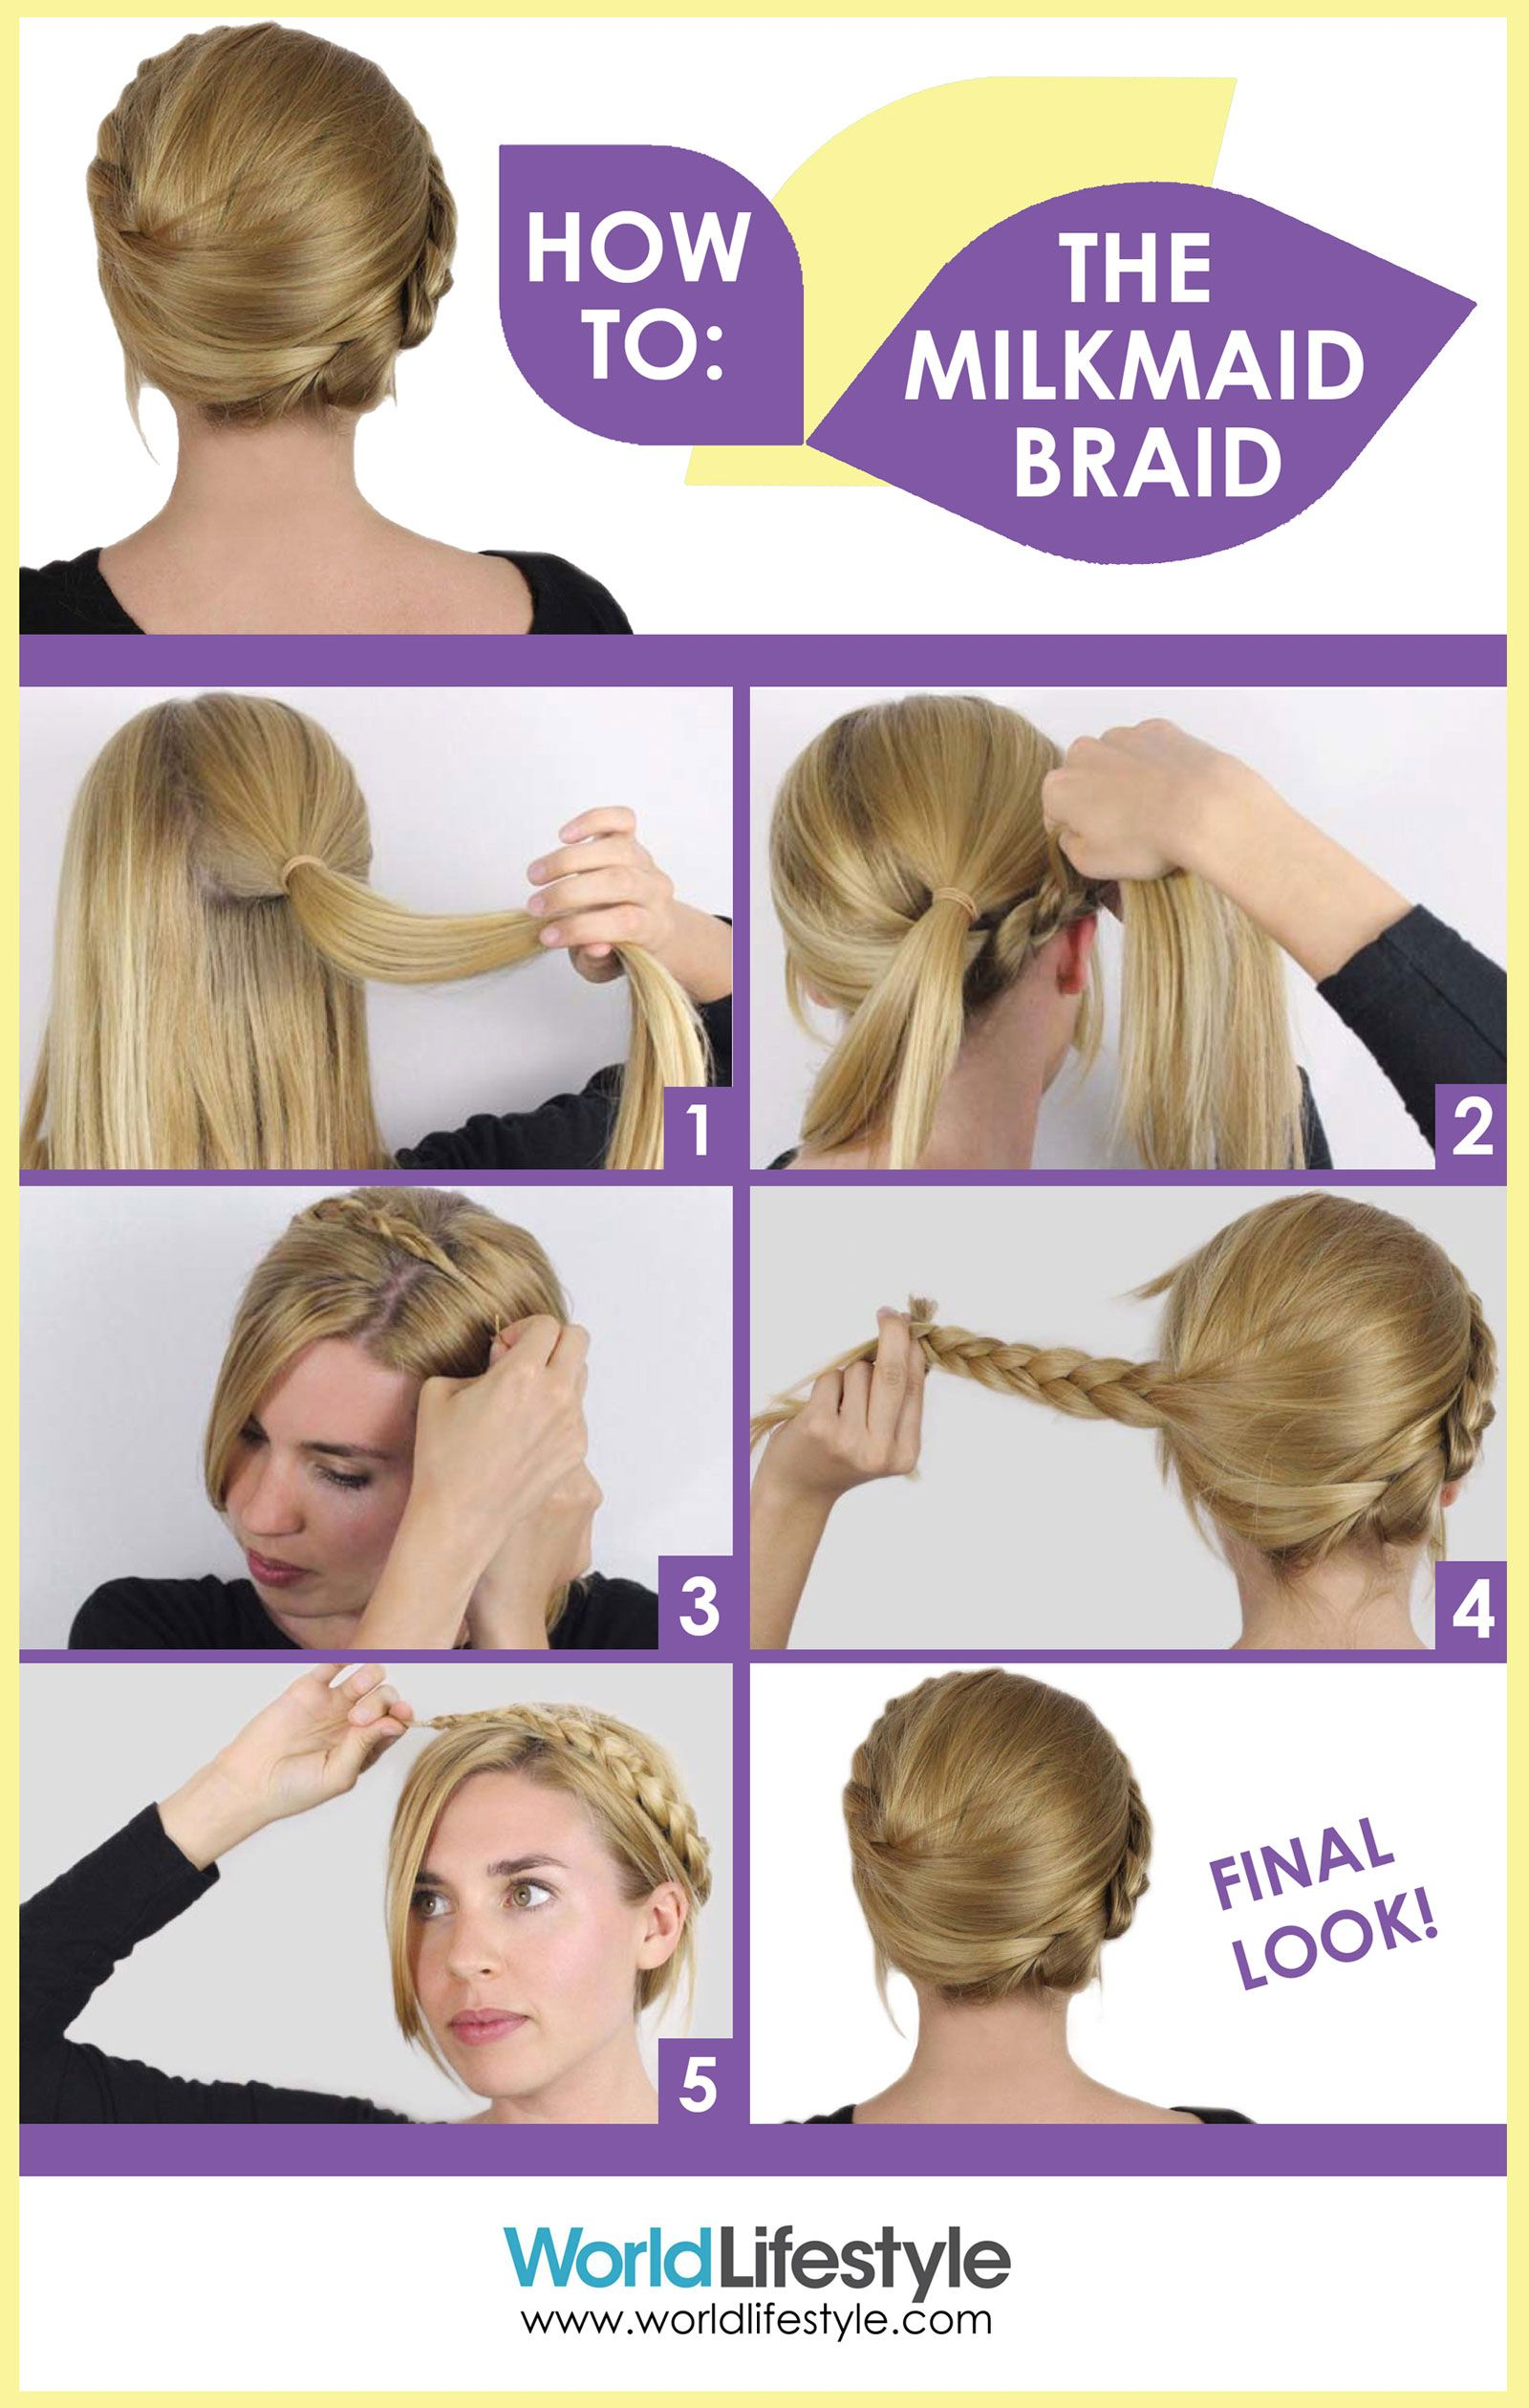 How to do an easy milkmaid braid with hair guru Sasha